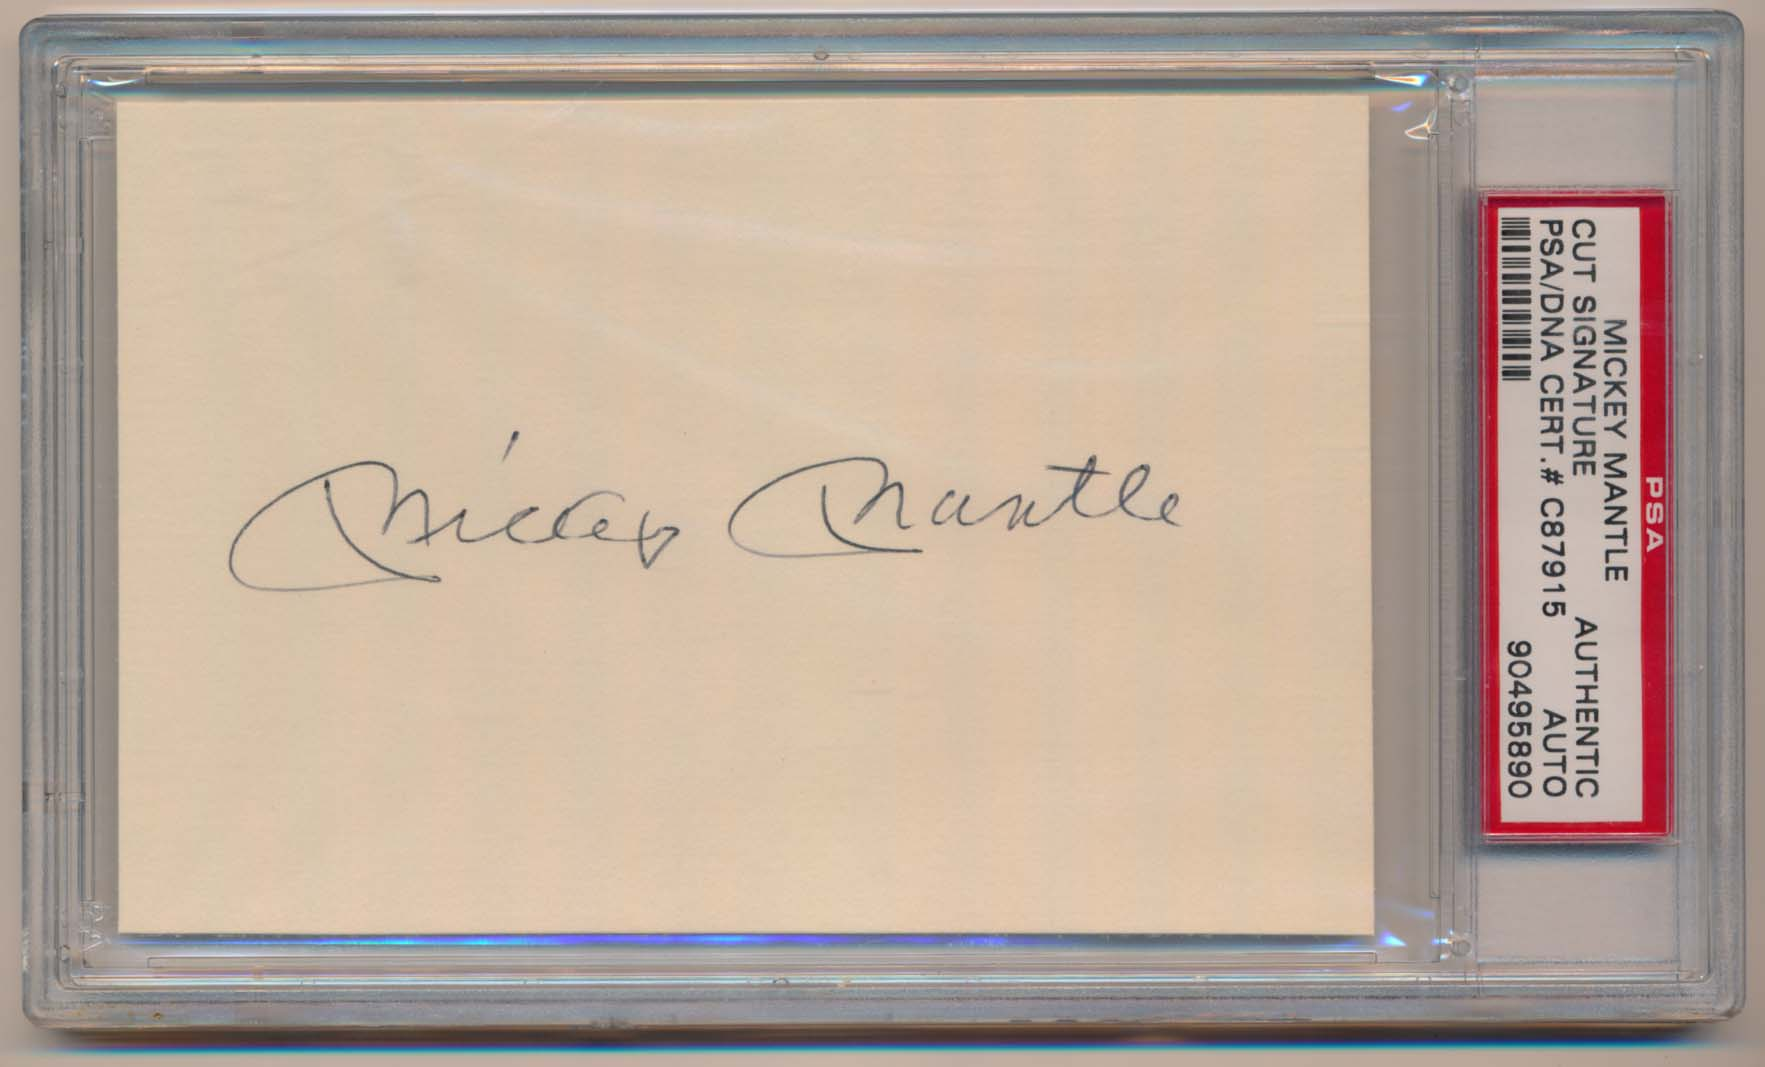 Lot #253  3 x 5  Mantle, Mickey (3.5 x 5.25) Cond: 8